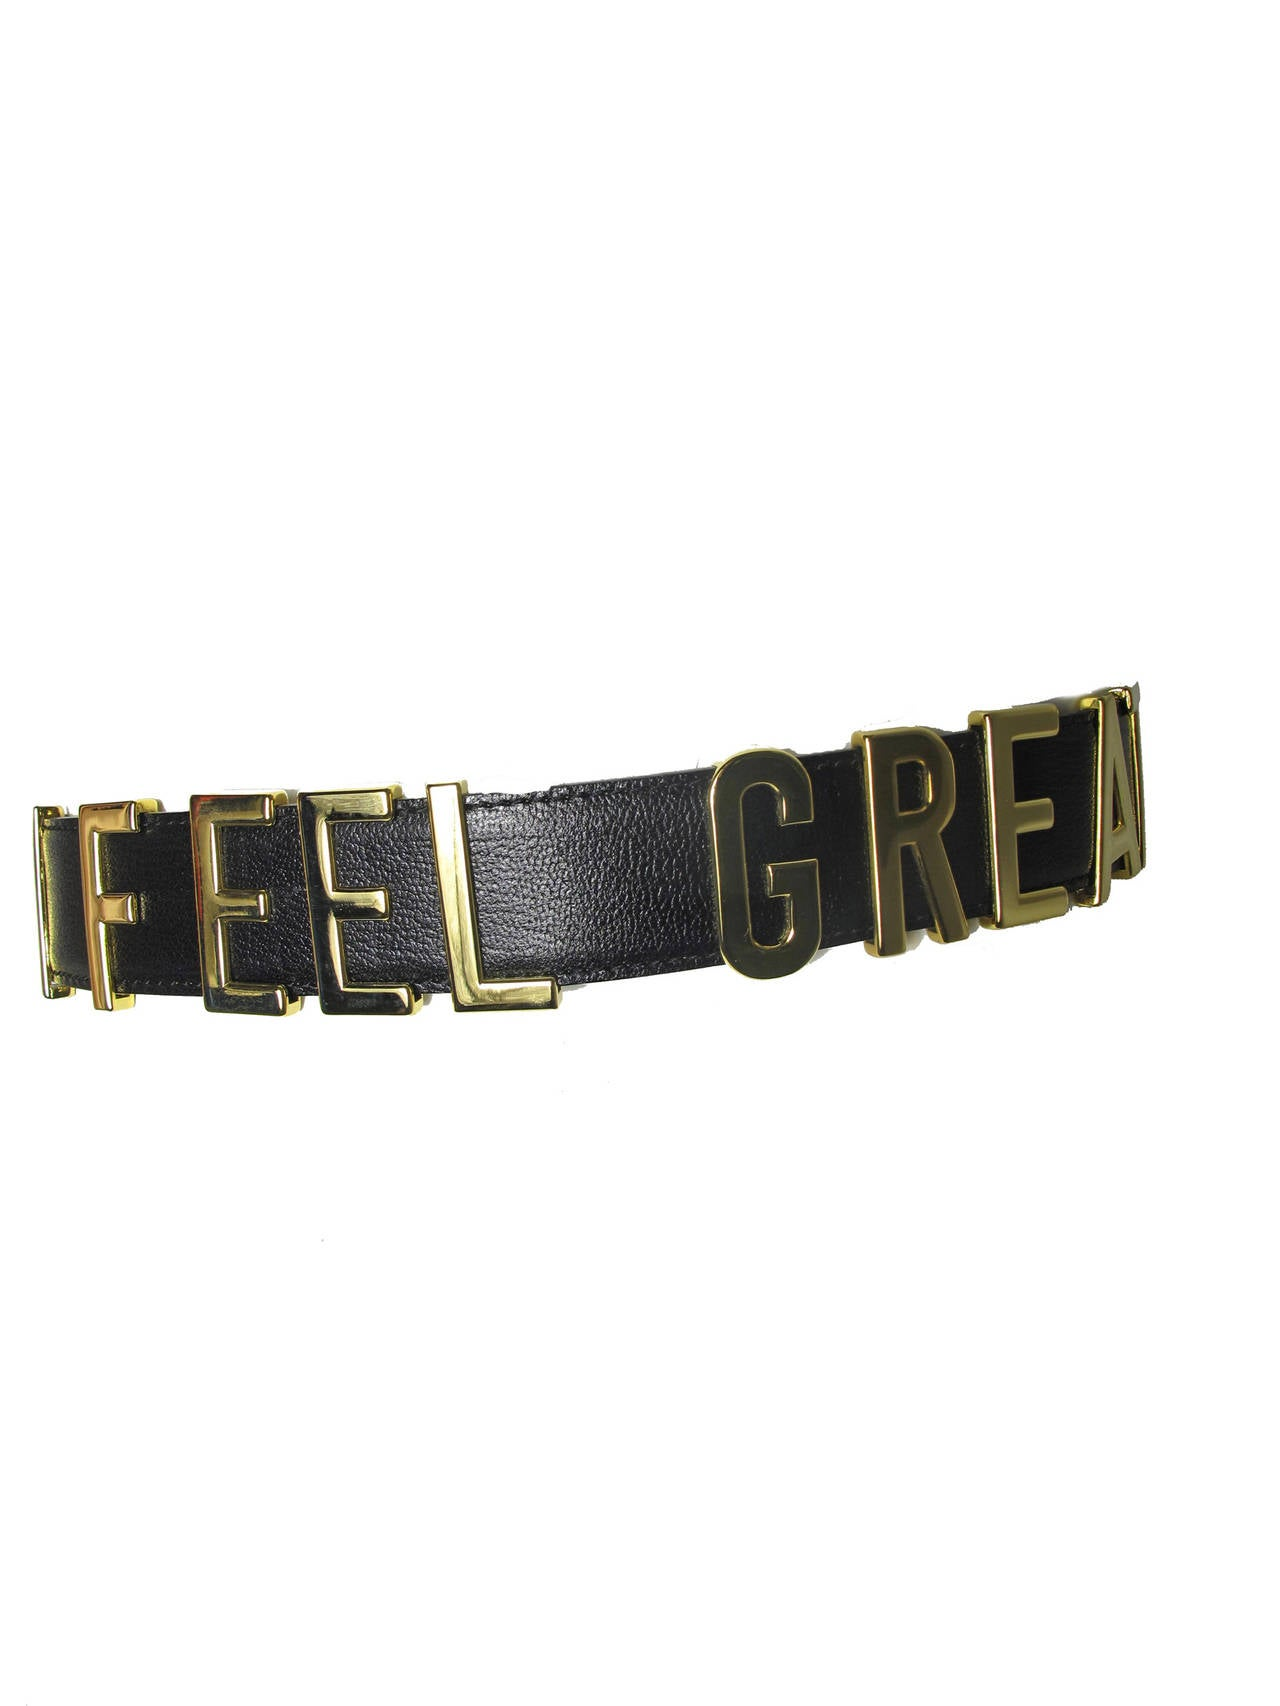 "Rare Moschino 1990s ""I FEEL GREAT"" Moveable Letters Waist Belt - small For Sale 1"